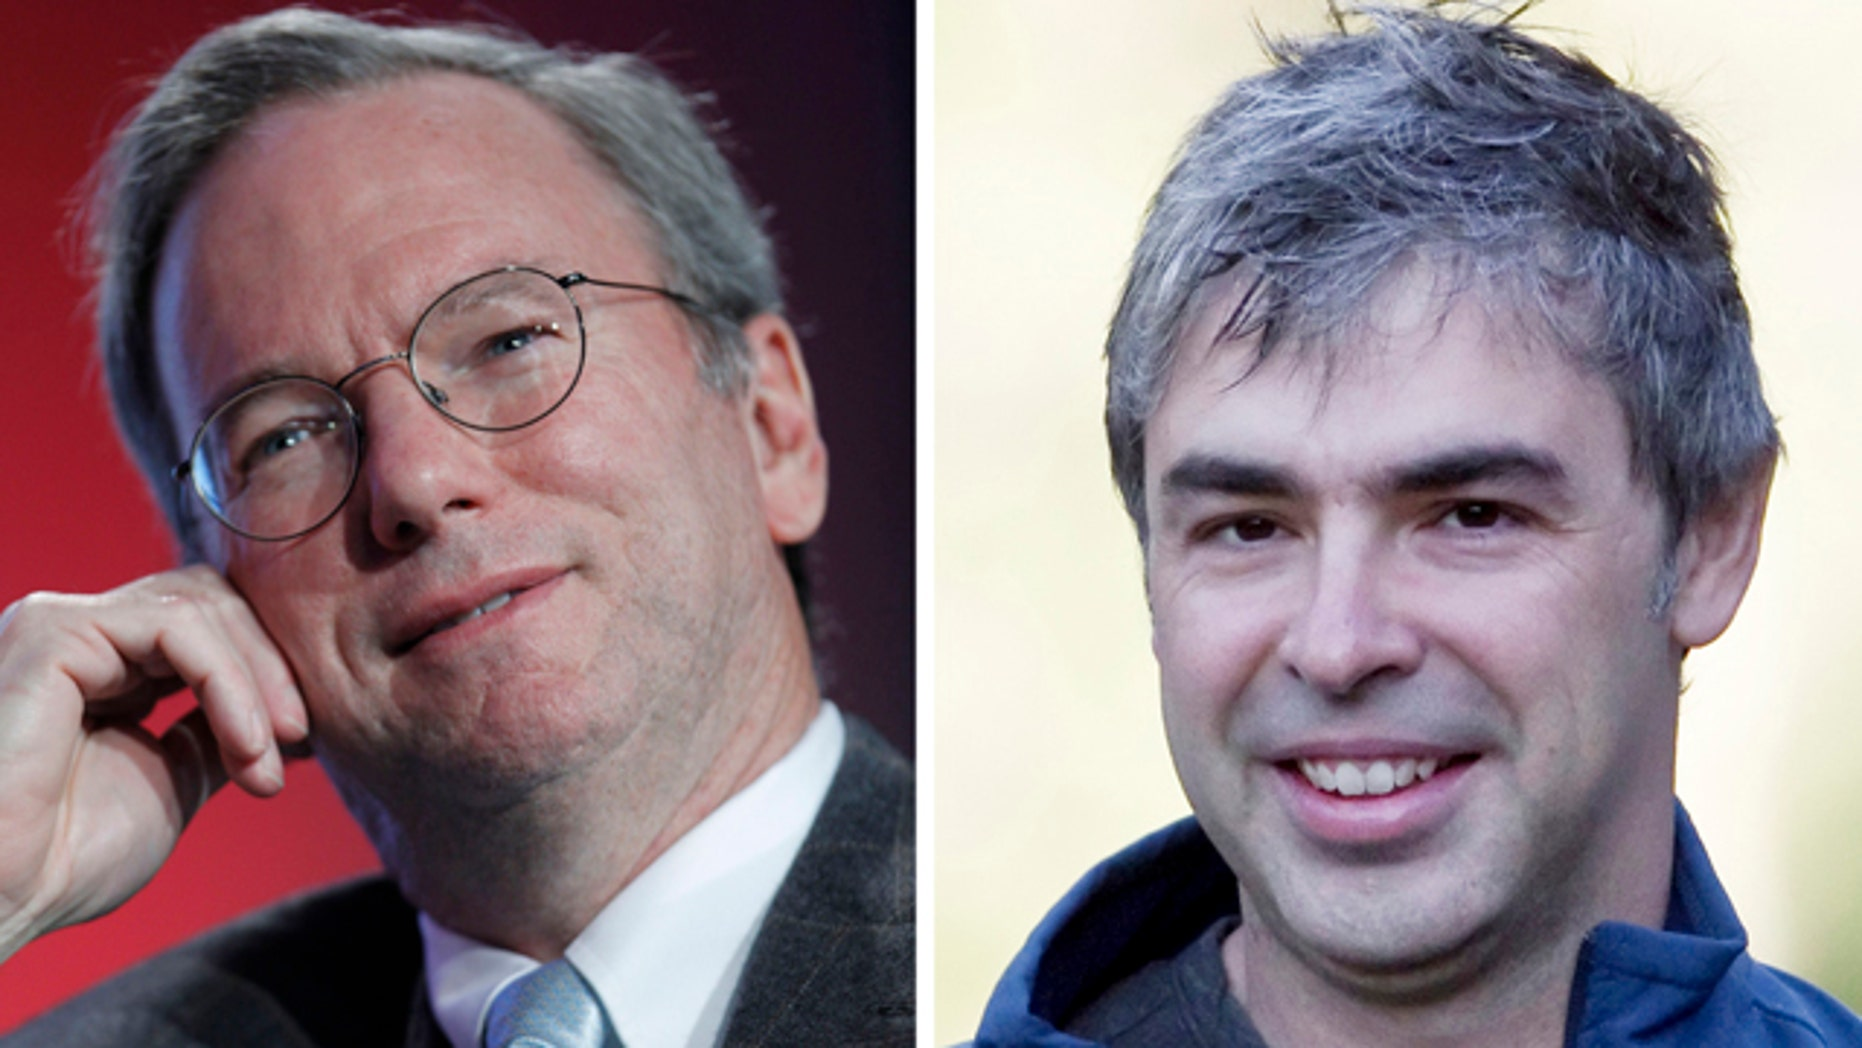 Google CEO Eric Schmidt, left, and Google co-founder Larry Page